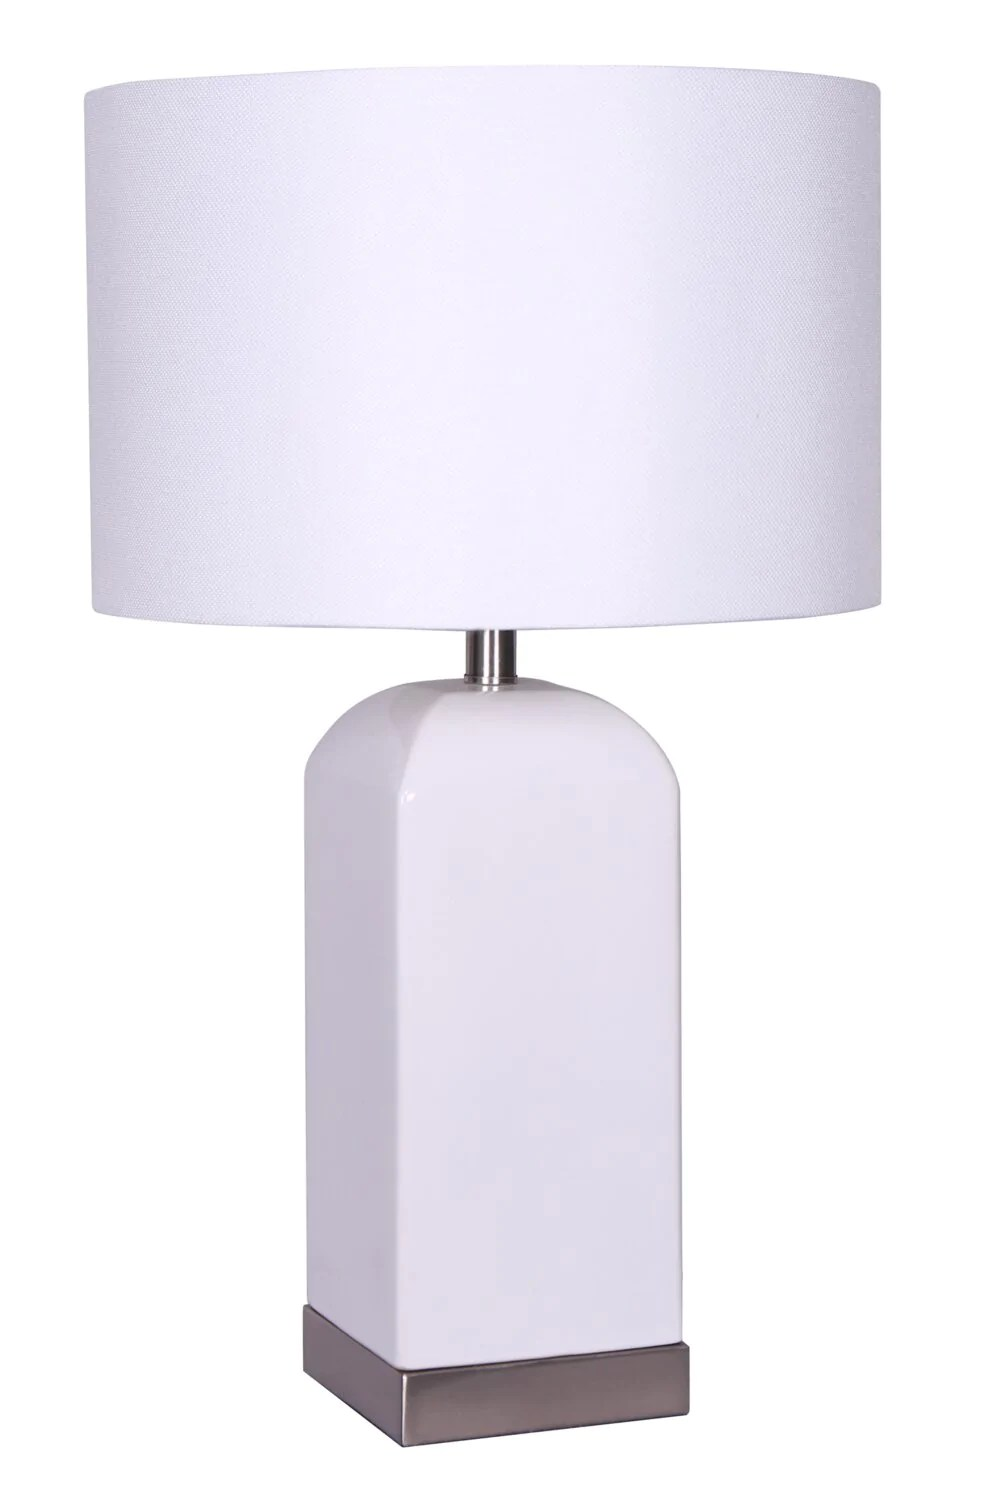 Poldas Ceramic Table Lamp The Brick